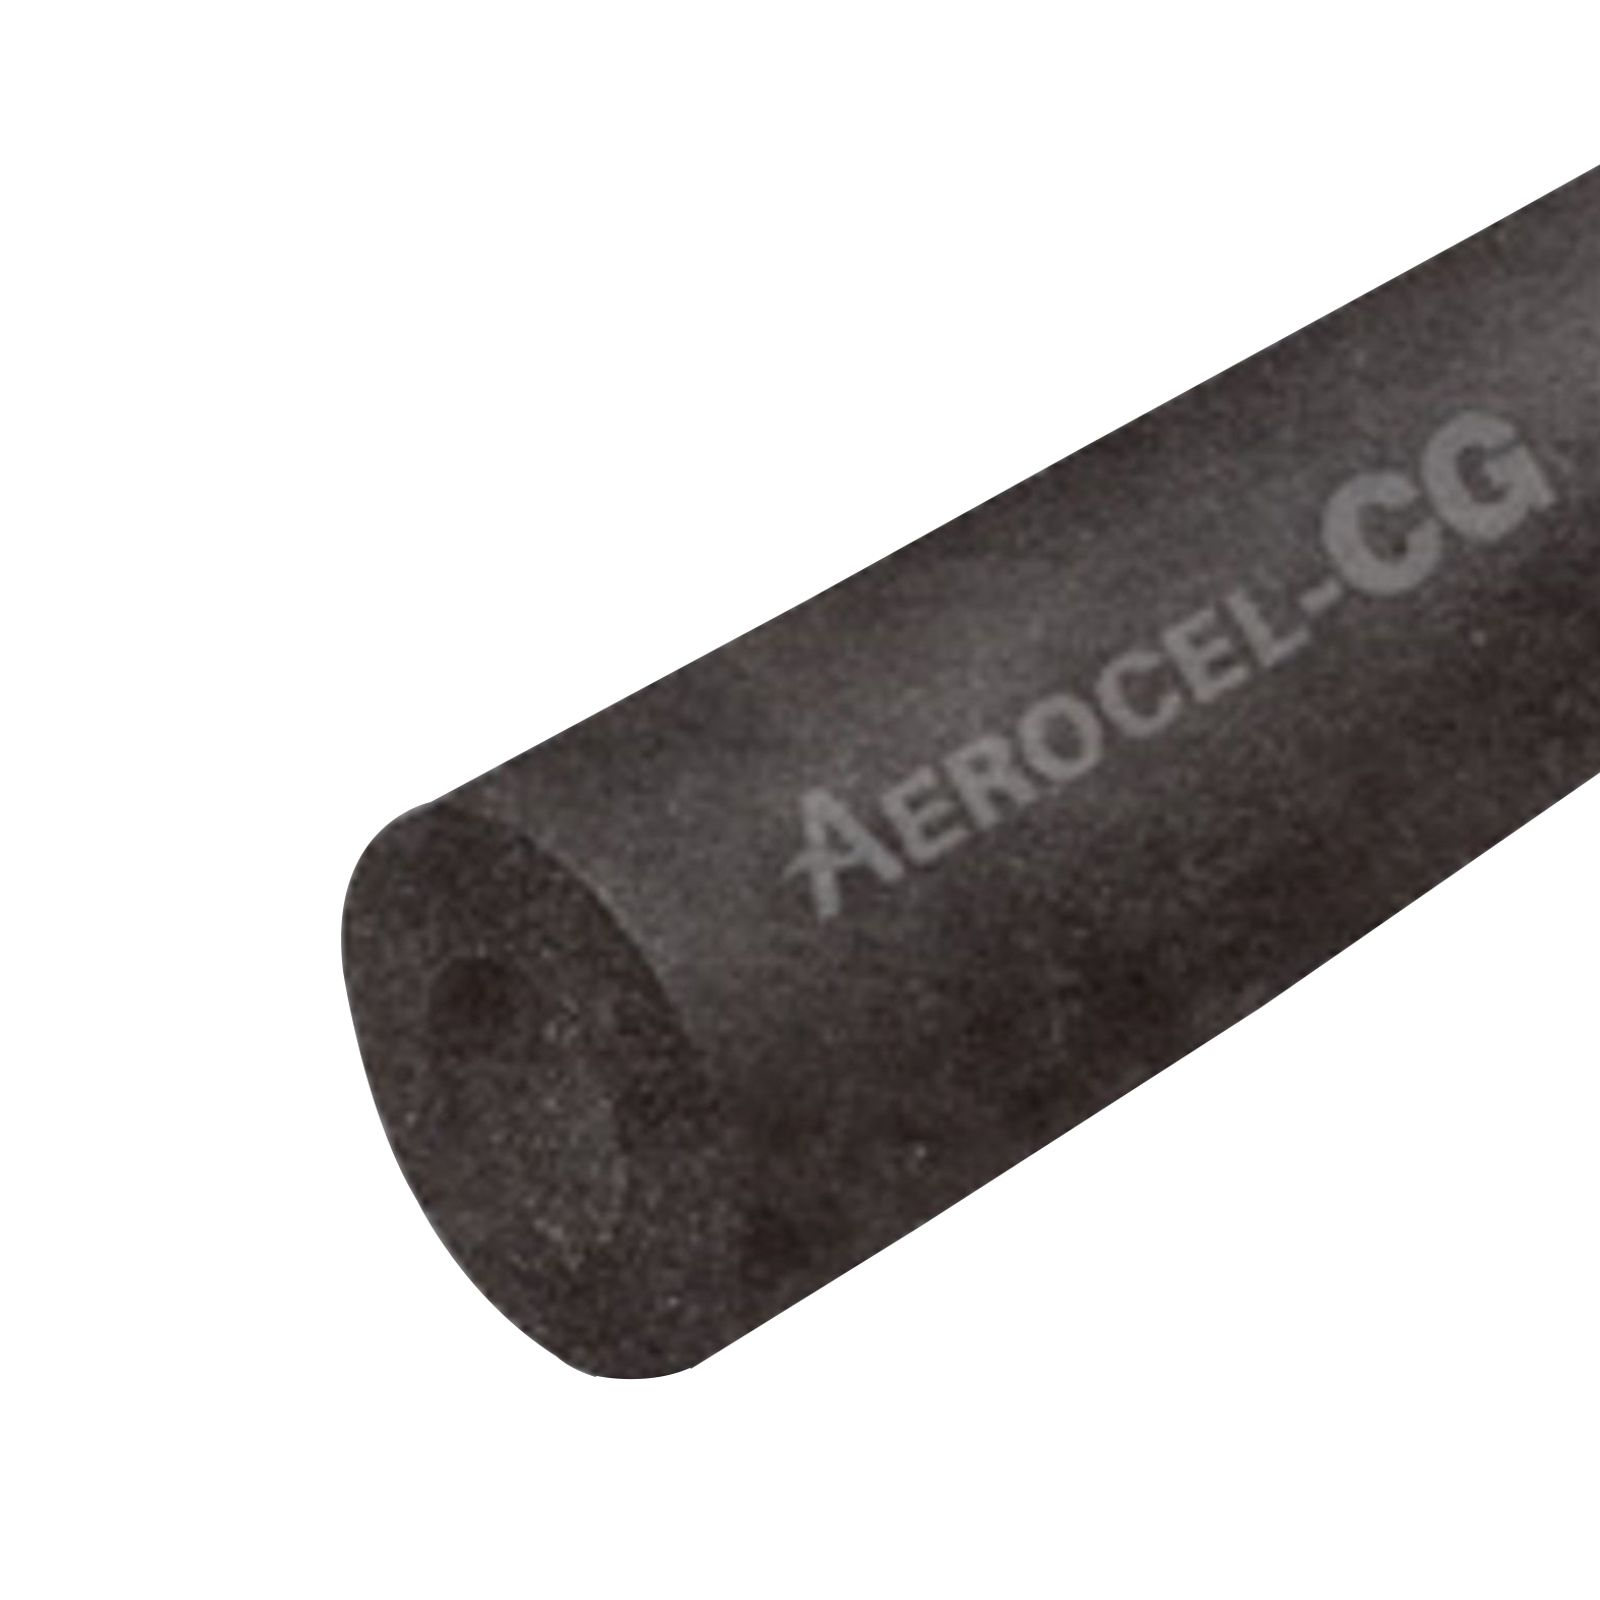 "Aeroflex CG1238 - Elastomeric Tubing Insulation, 1/2"" ID X 3/8"" Wall Thickness, Fits 1/2"" OD Copper Tubing, Residential Only"